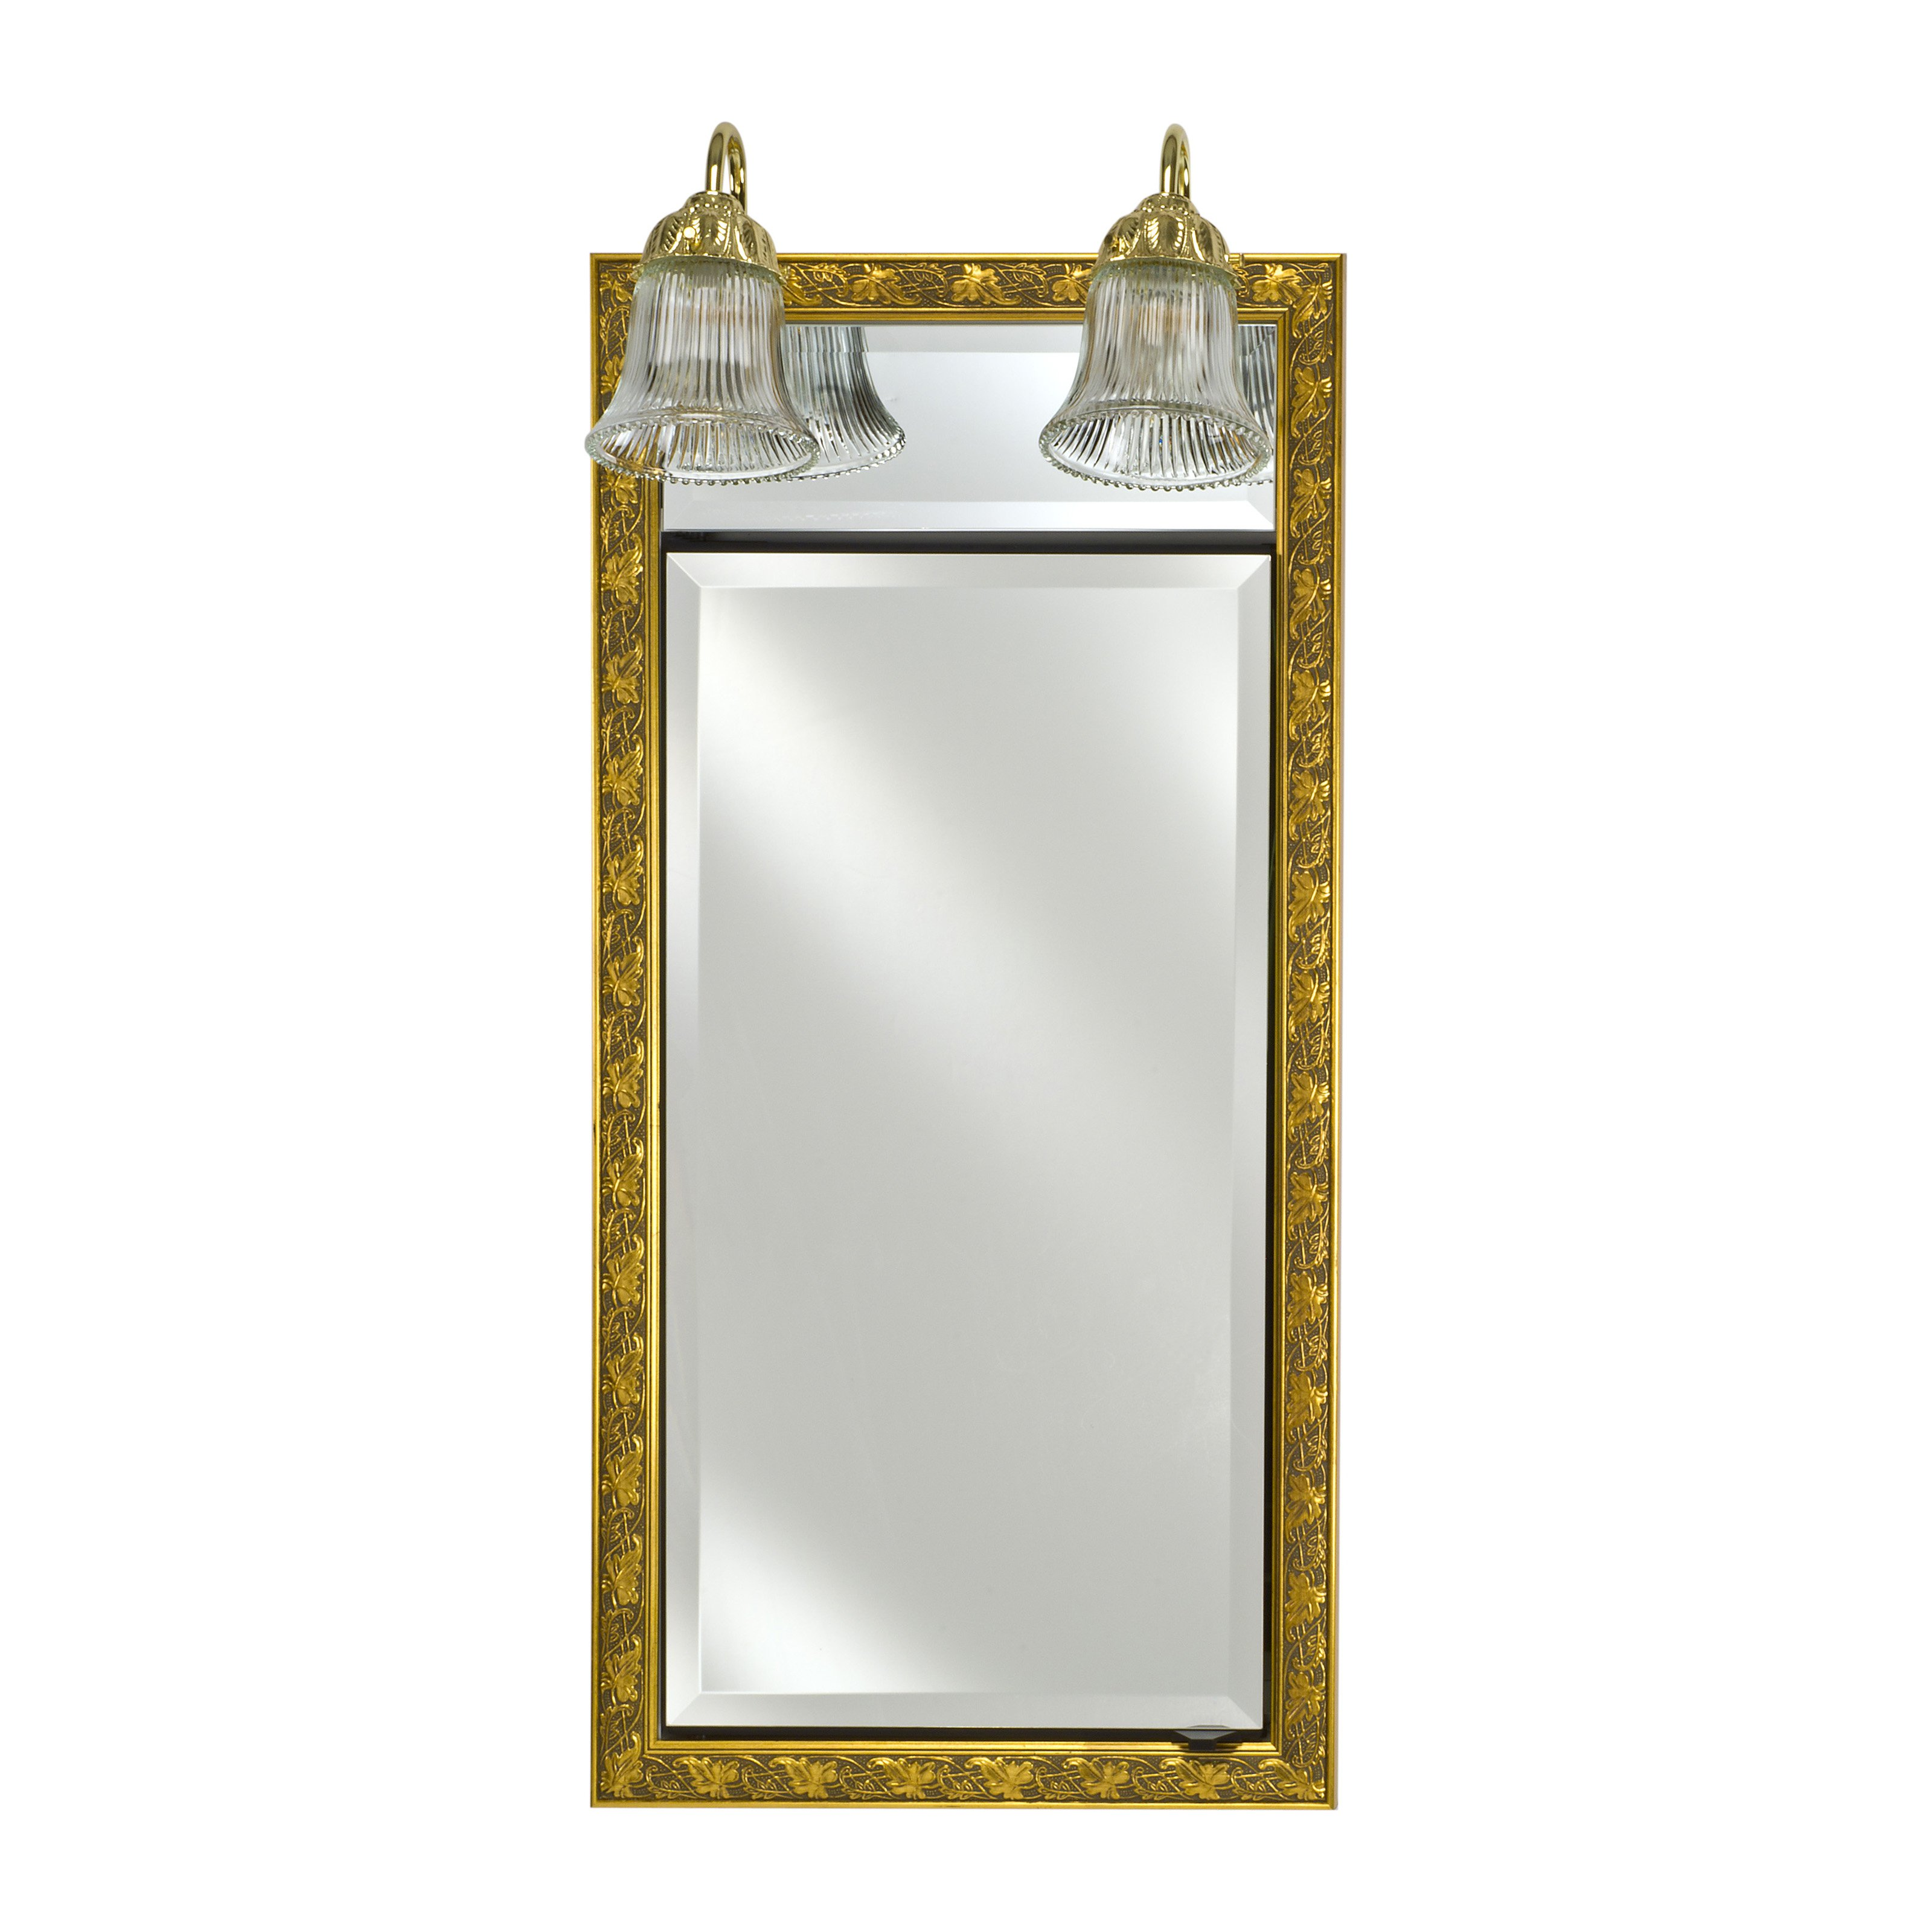 Afina Signature Traditional Lighted Single Door 24W x 34H in. Recessed Medicine Cabinet